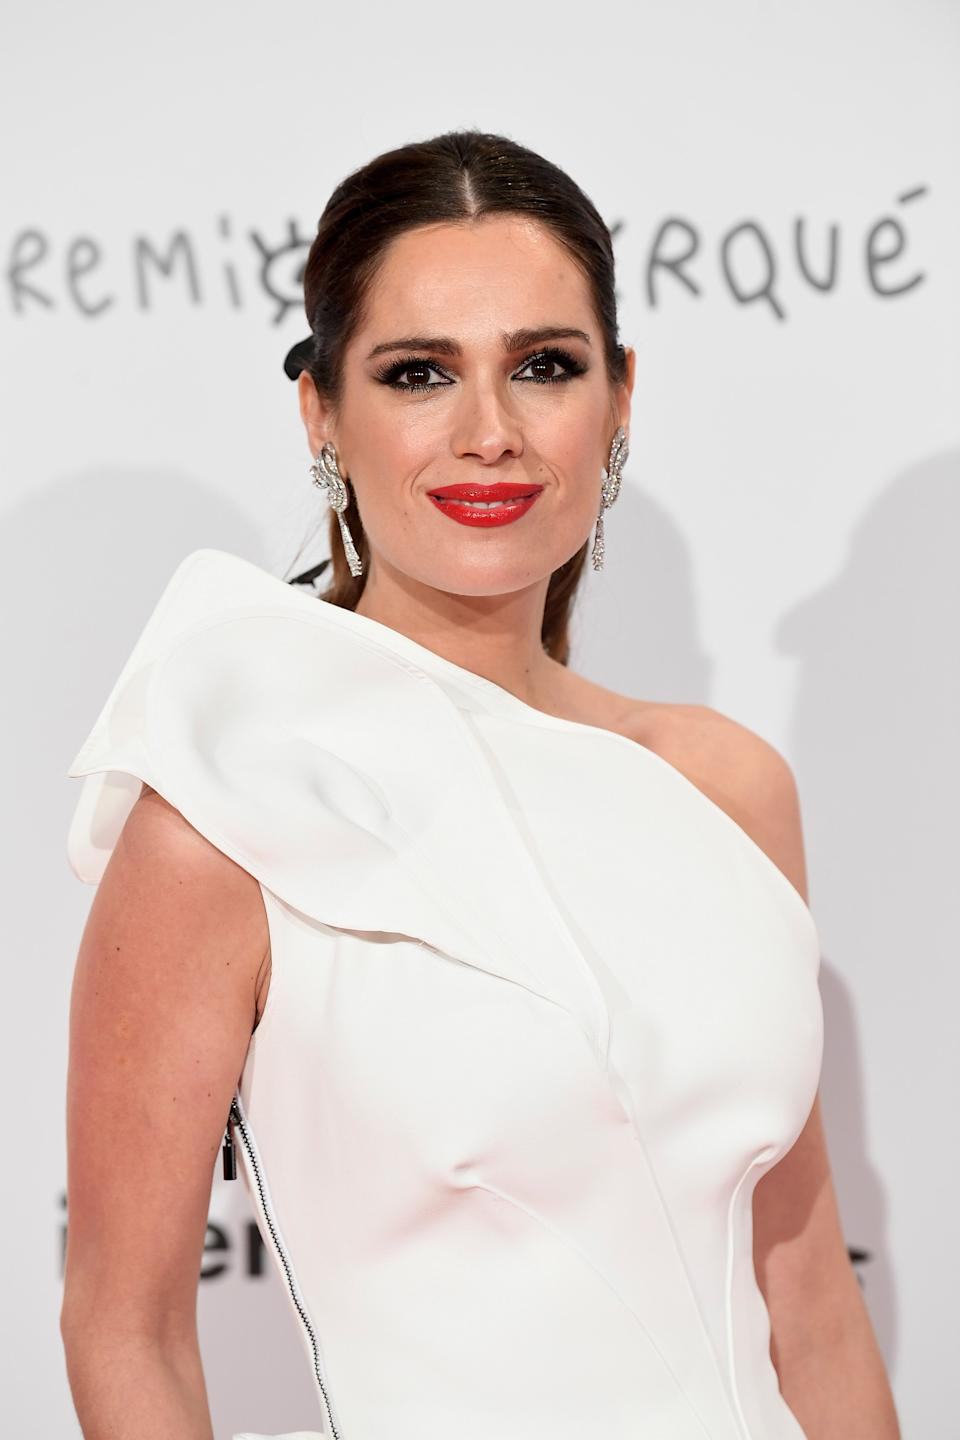 MADRID, SPAIN - JANUARY 11: Mar Saura attends the red carpet during 'Jose Maria Forque Awards' 2020 at Ifema on January 11, 2020 in Madrid, Spain. (Photo by Carlos Alvarez/Getty Images)